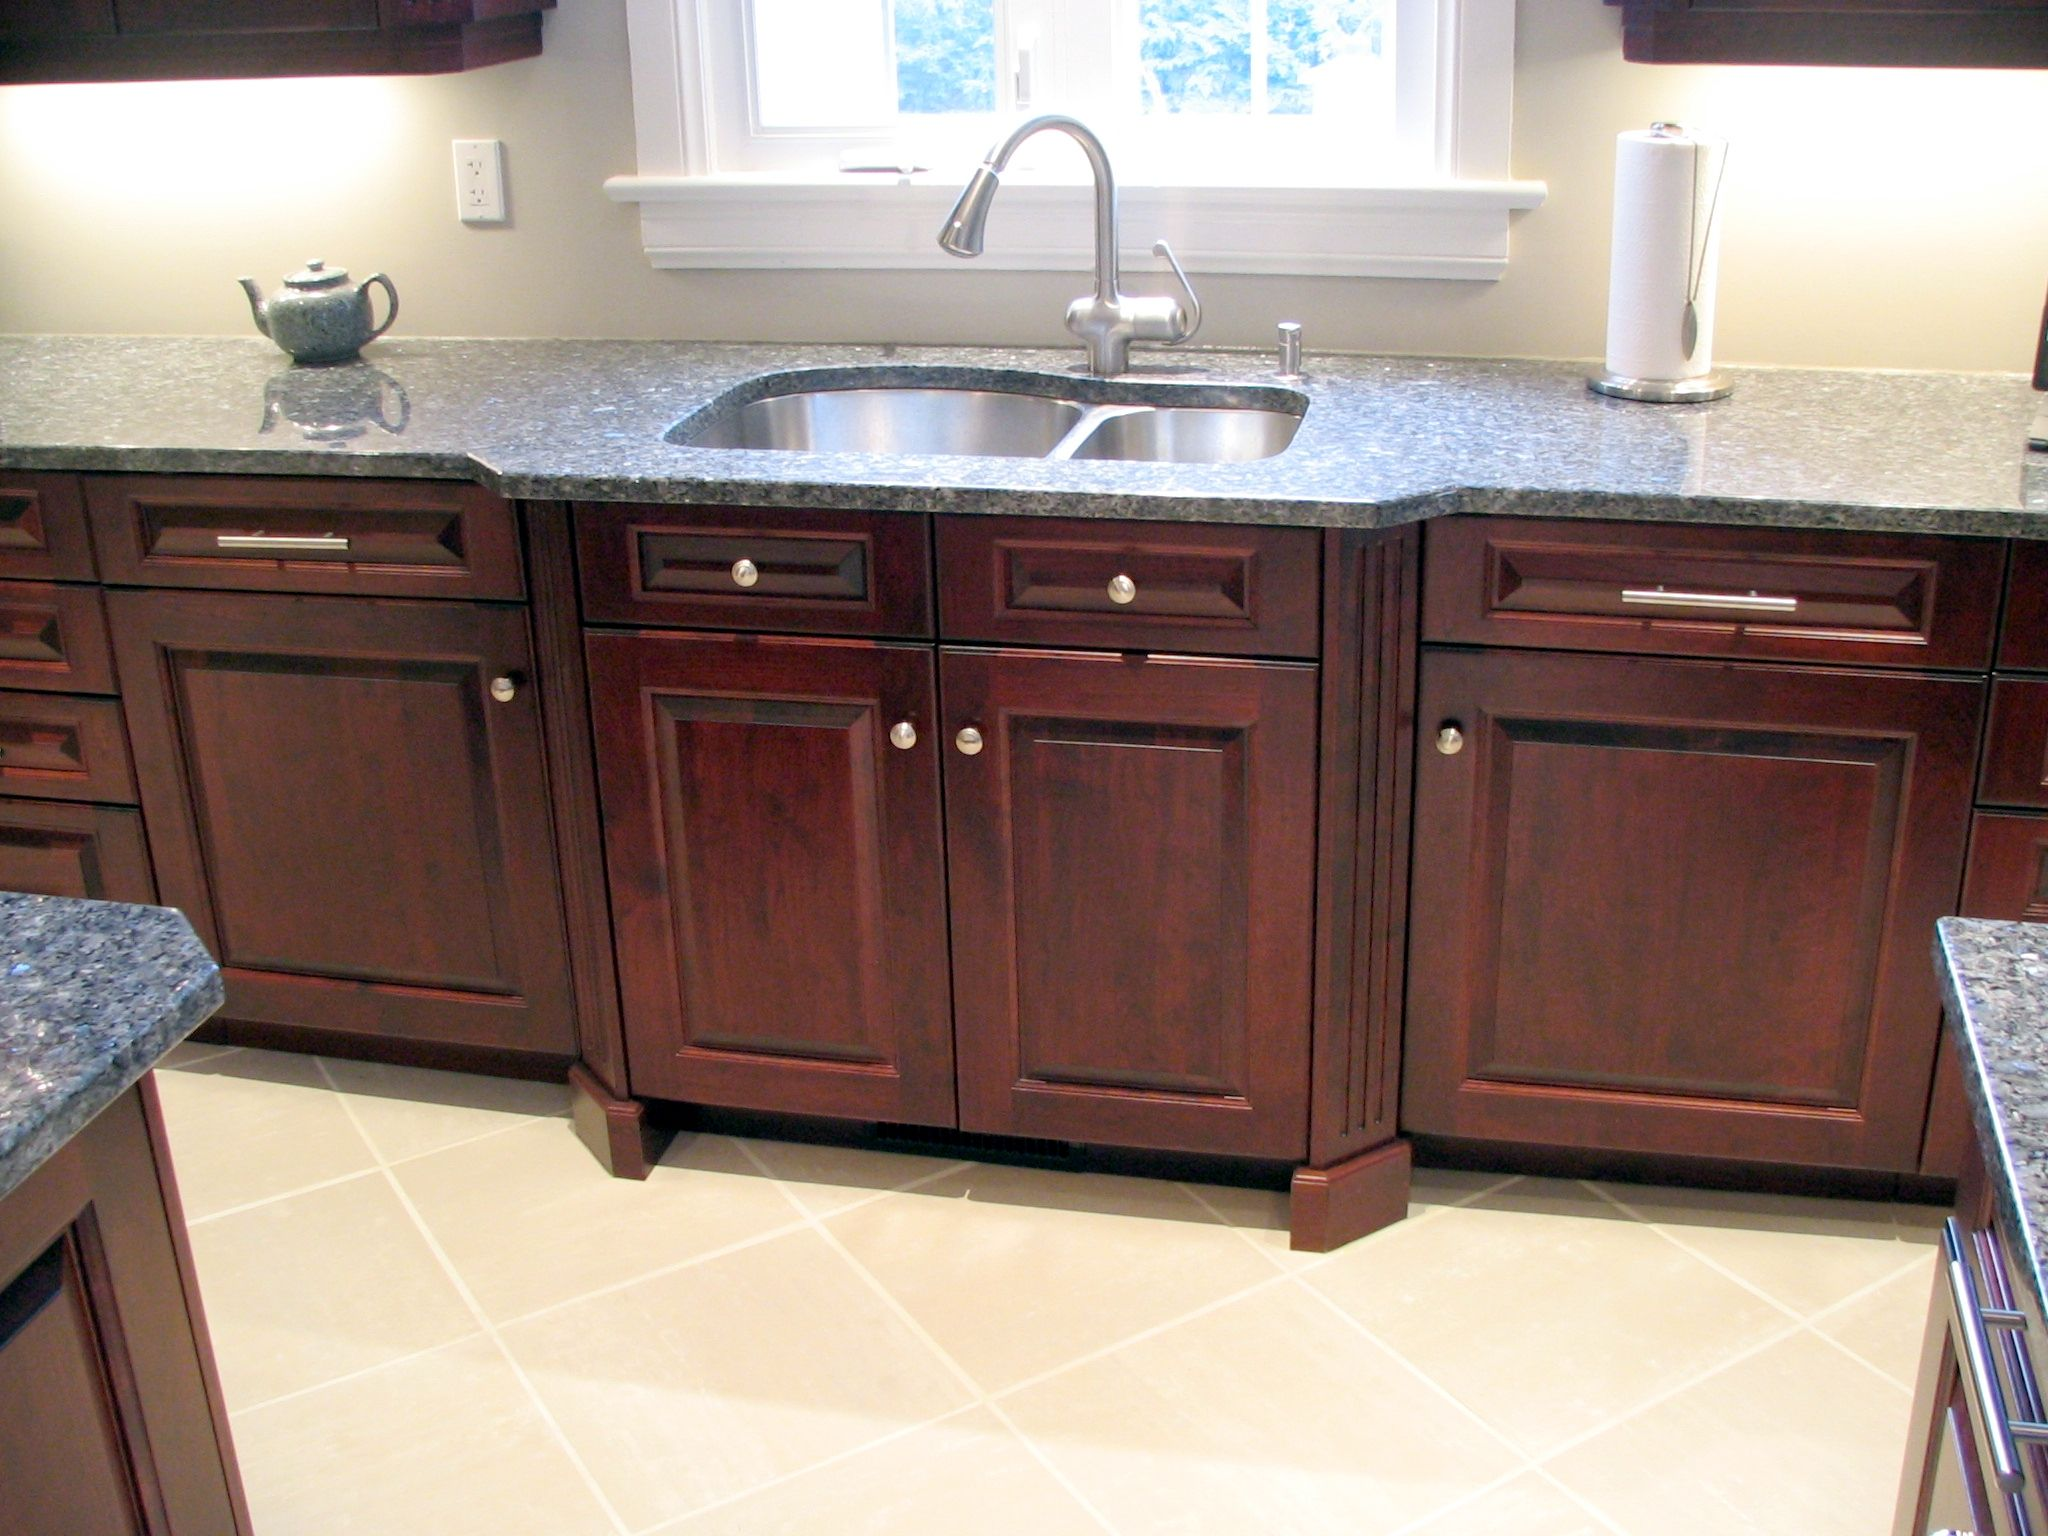 cabinet connection kitchens kitchen sink cabinets Angled fluted columns bump out the sink area in this Rosewood Cherry kitchen Can you